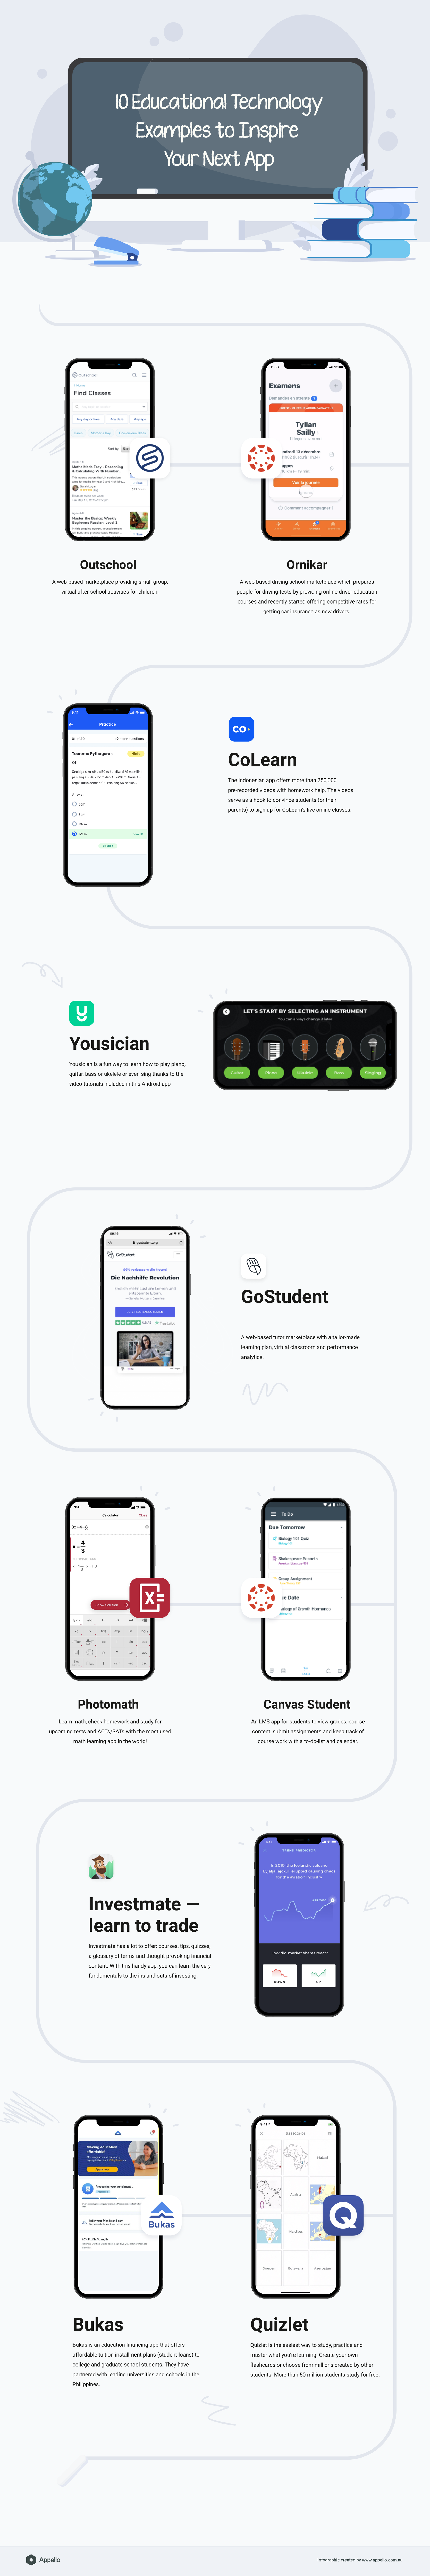 educational technology app examples